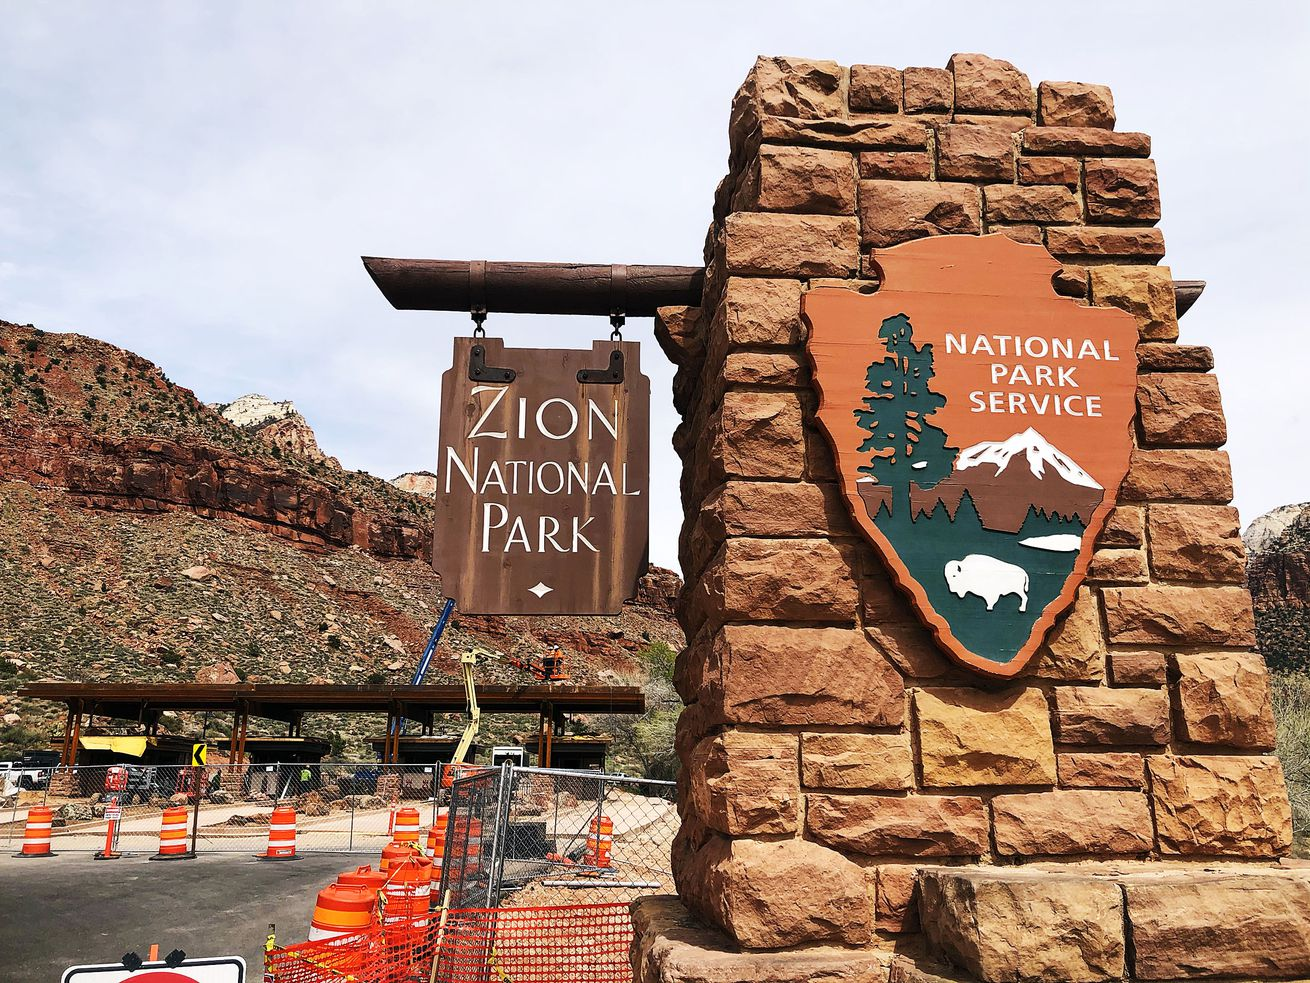 The entrance to Zion National Park is pictured on Wednesday, March 25, 2020. At back left, new entrance booths are under construction. The park was closed on Friday, April 3, 2020, to fight the coronavirus pandemic.